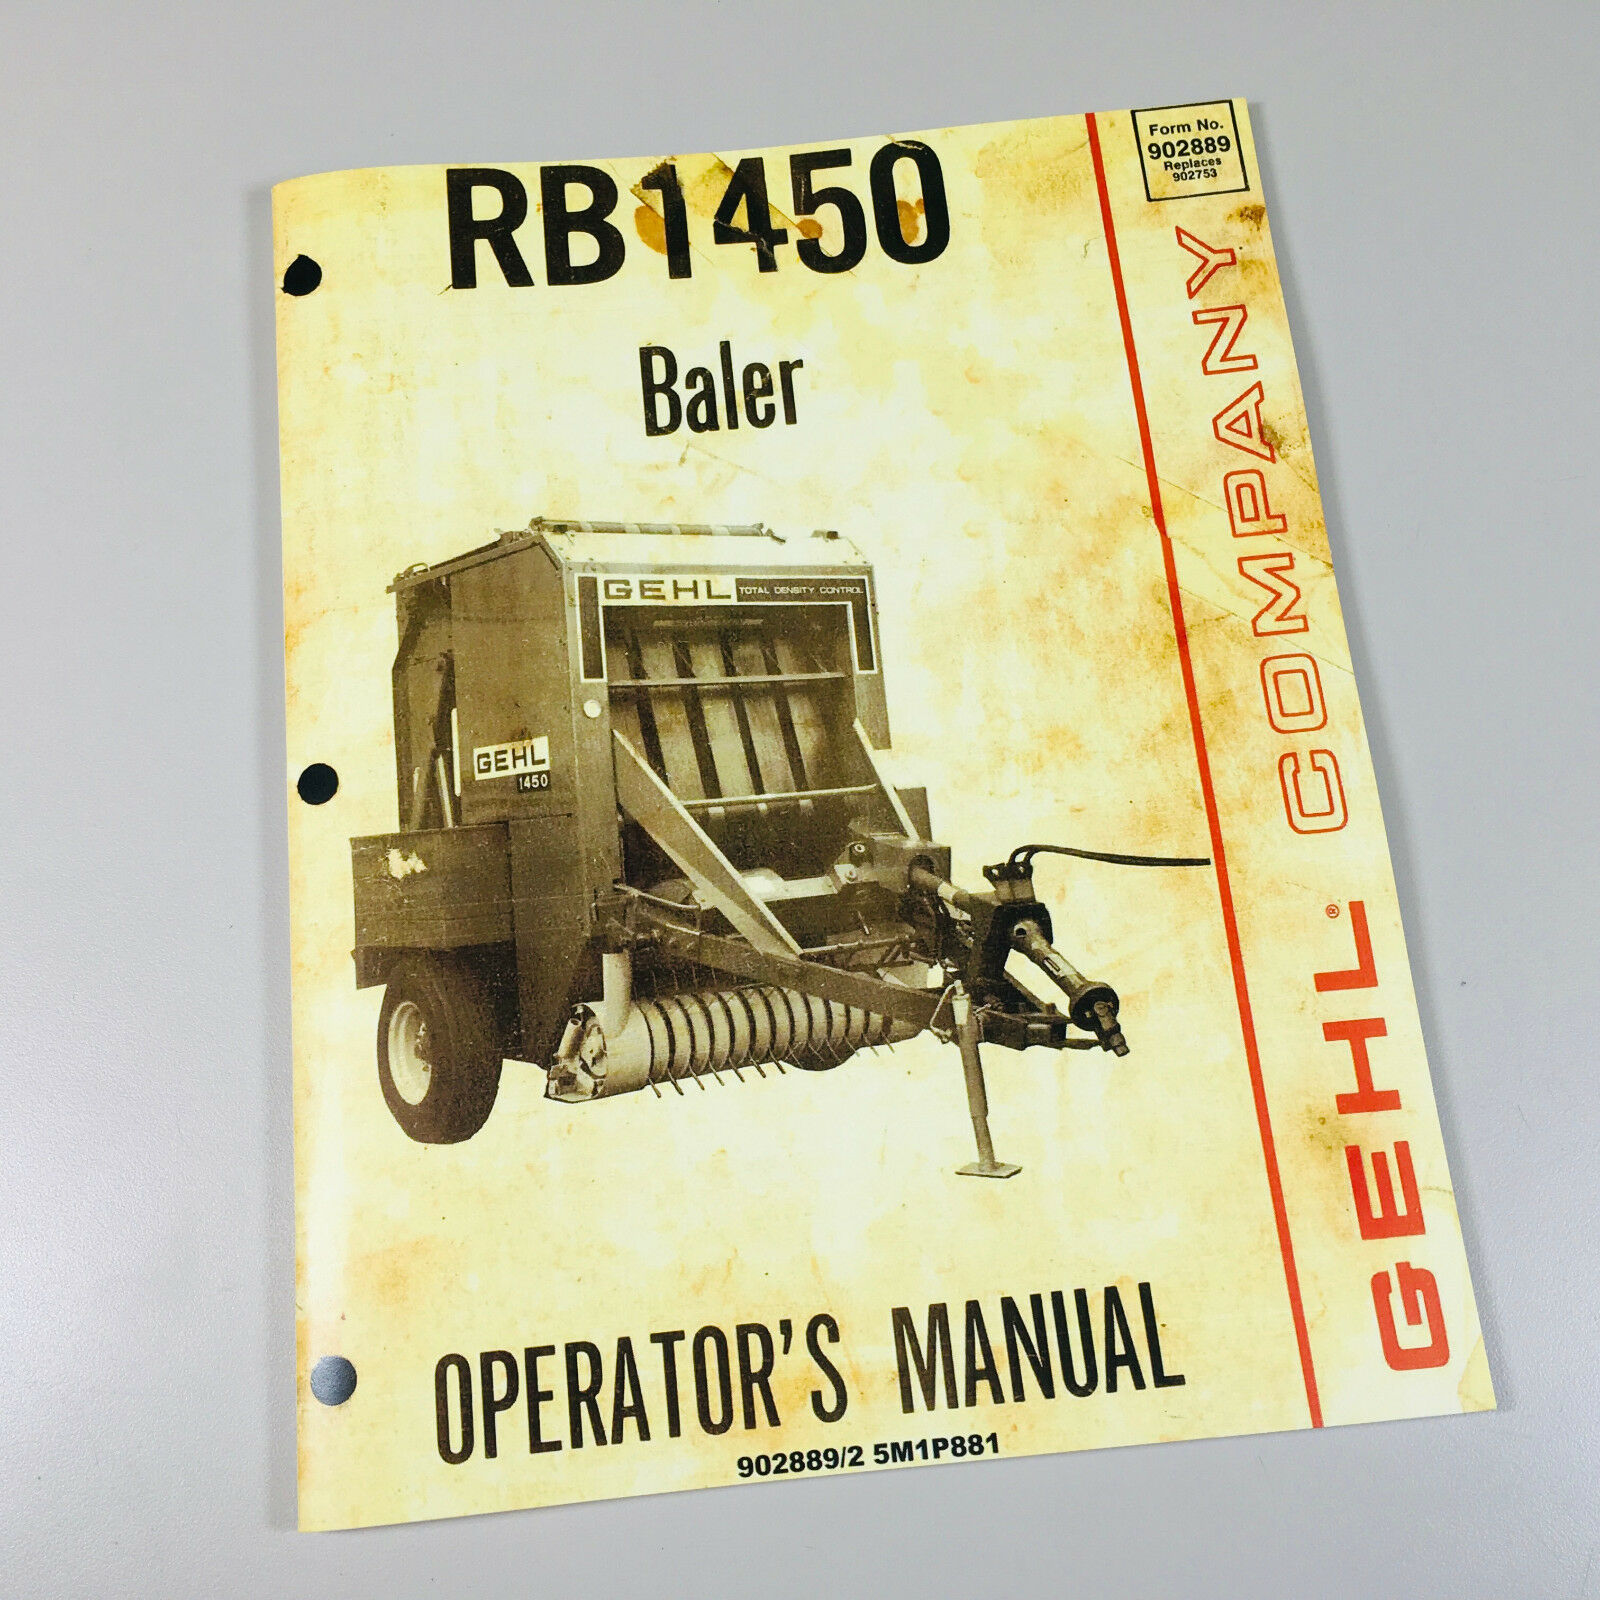 gehl rb1450 baler operators manual ebay rh ebay com